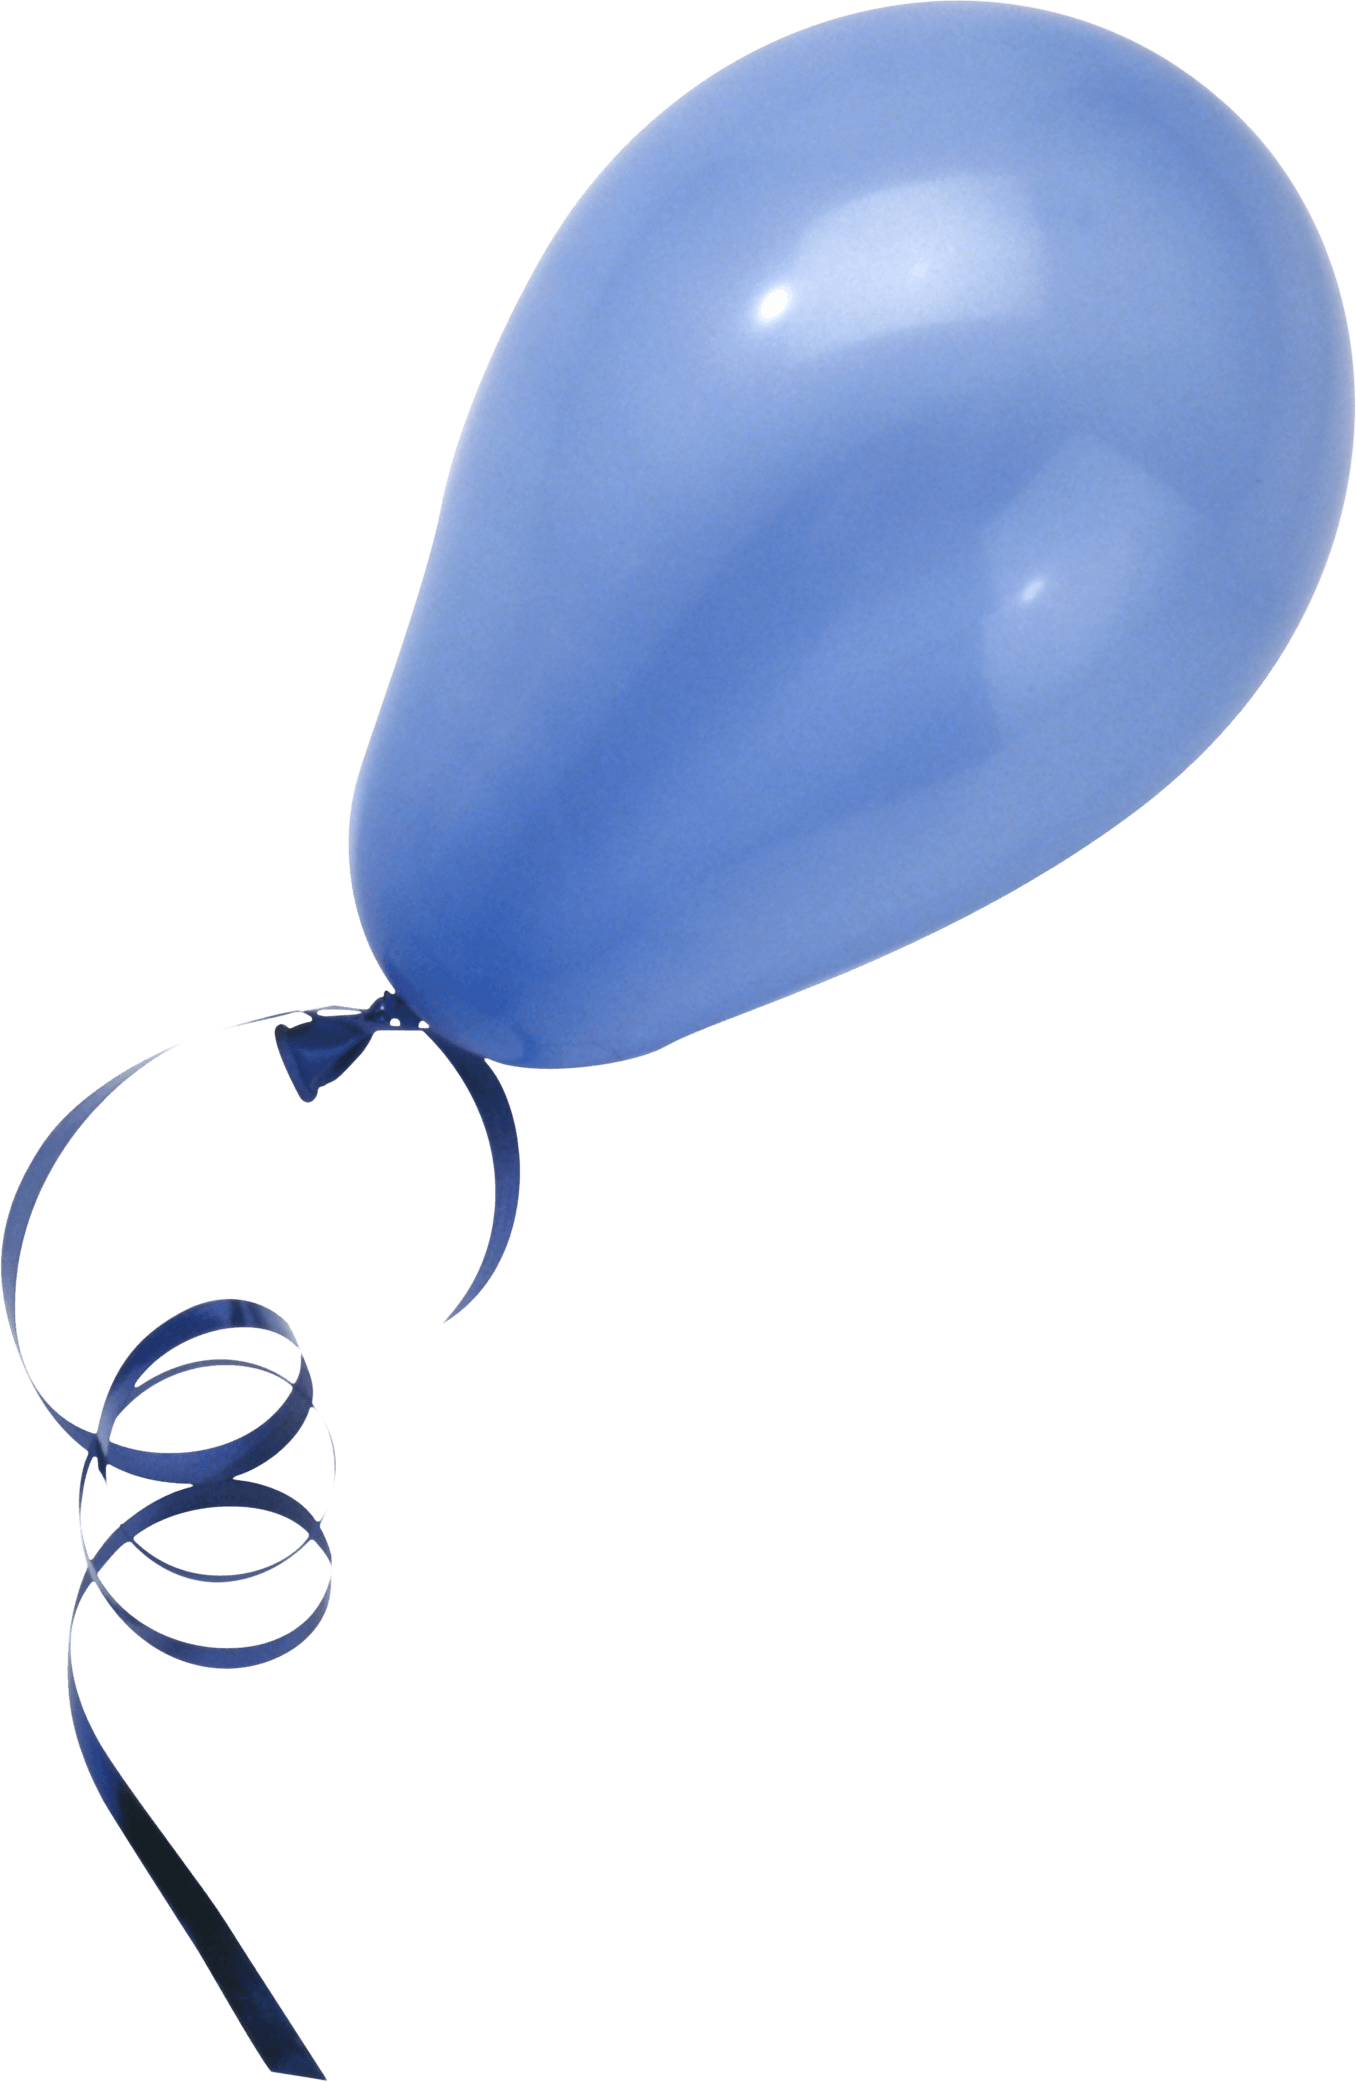 Blue Balloon Png Image PNG Image